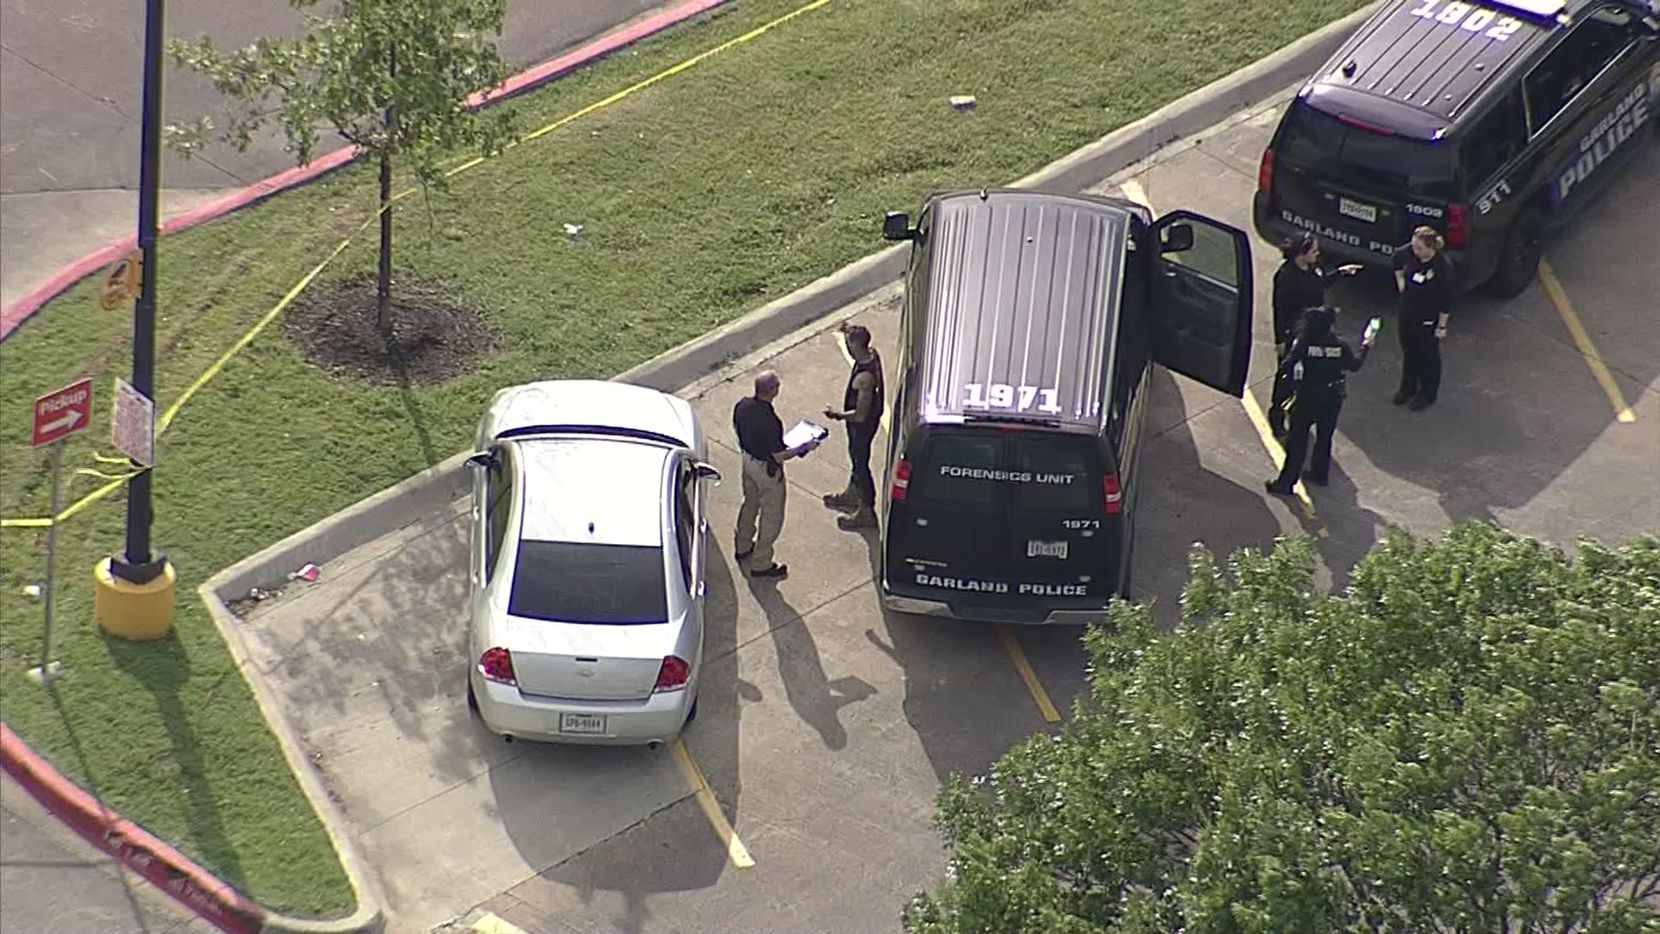 Garland police were called to the Walmart at Interstate 30 and Broadway Boulevard just after 4:30 p.m. Friday.